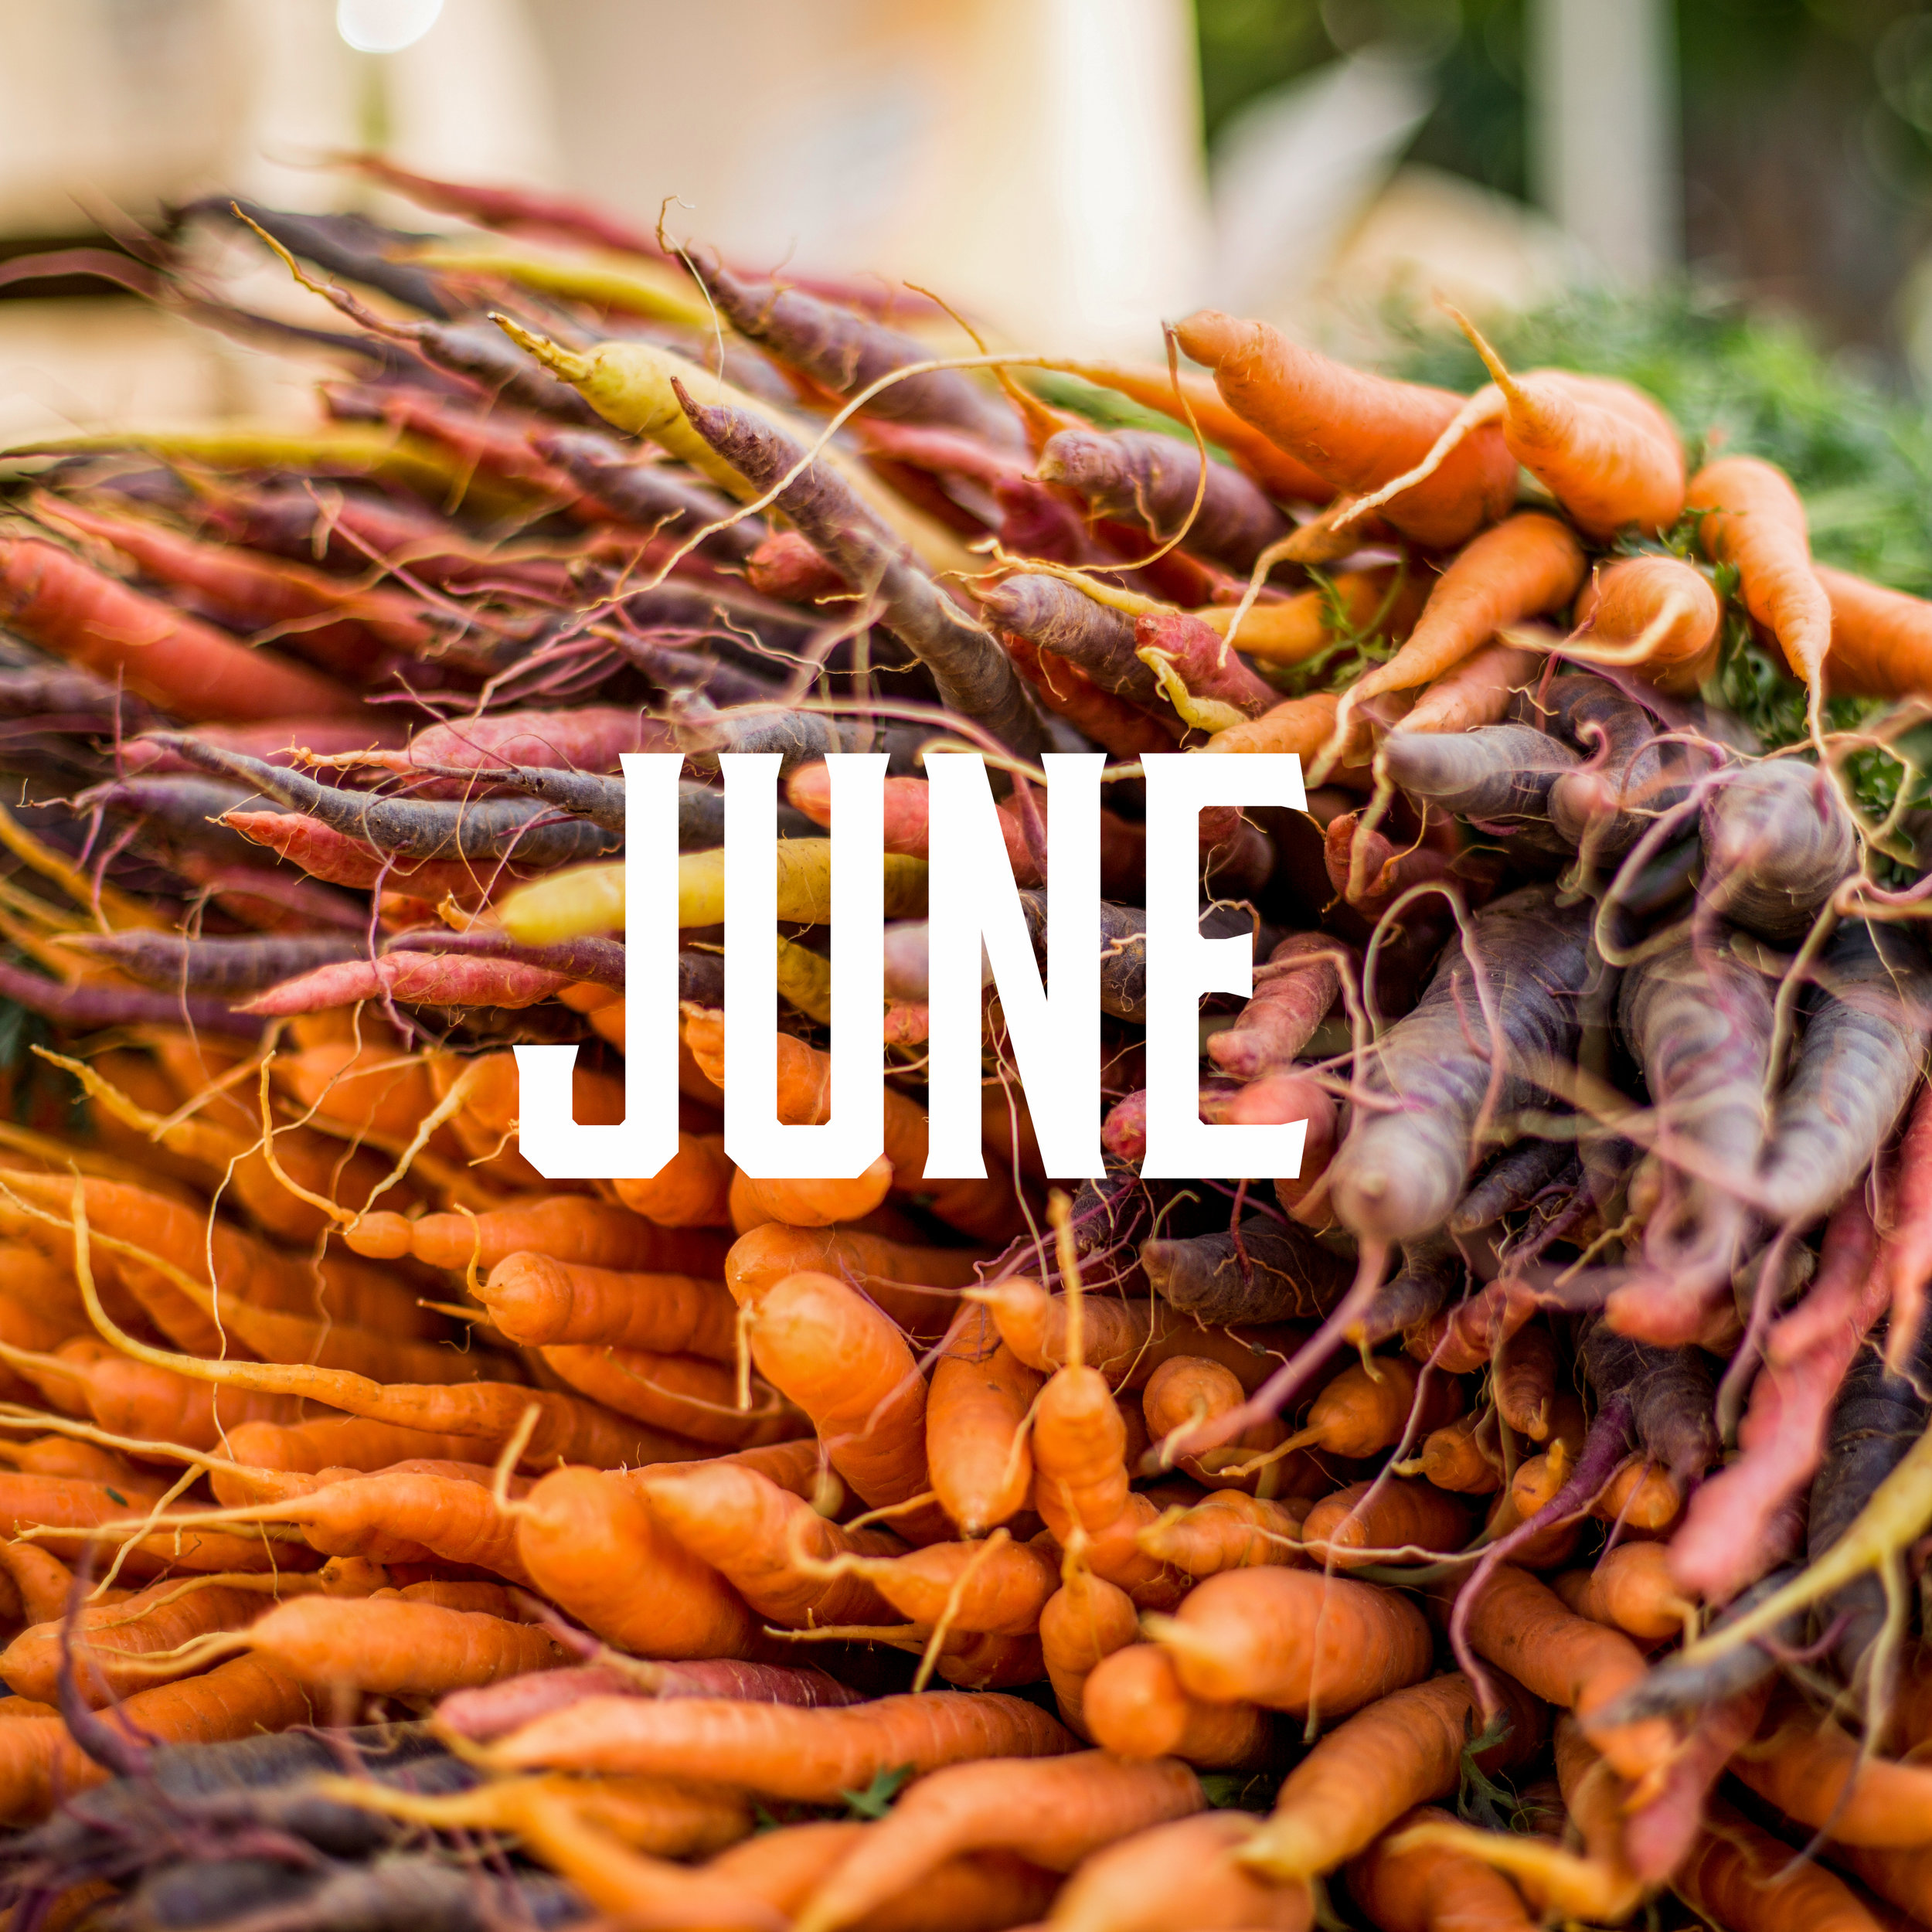 June Season - June brings us lots of hearty veggies and some of our favorite berries!Chard, Cherries, Collard Greens, Fennel,Scallions, Kale, Lettuce, Mint,Mushrooms, Onions, Oregano,Parsley, Peas, Potatoes, Radishes,Rhubarb, Raspberries, Rosemary,Snap Peas, Spinach, Summer Squash,Strawberries, Thyme, Turnips, Zucchini